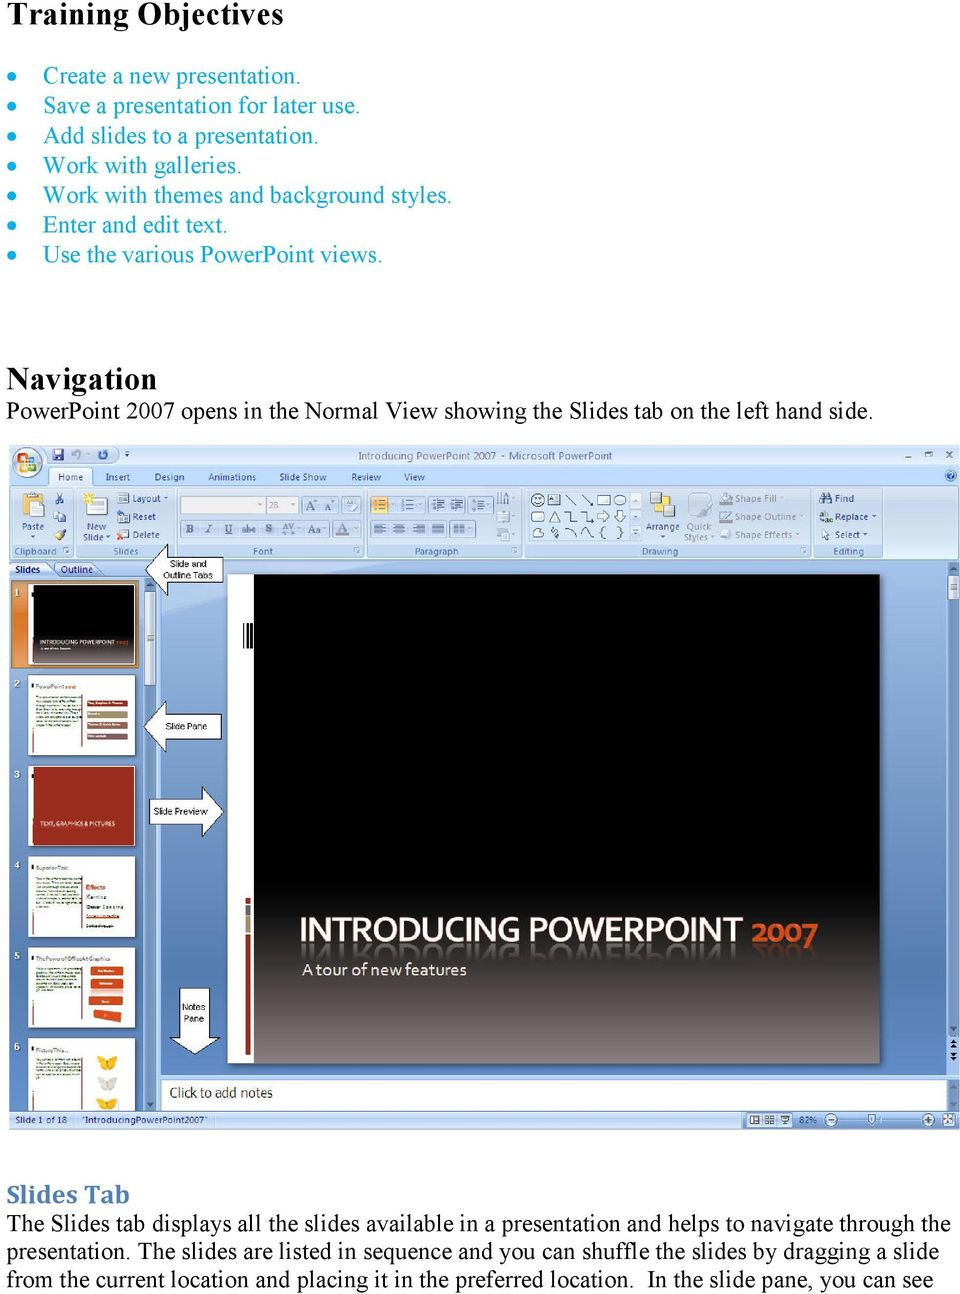 Navigation PowerPoint 2007 opens in the Normal View showing the Slides tab on the left hand side.